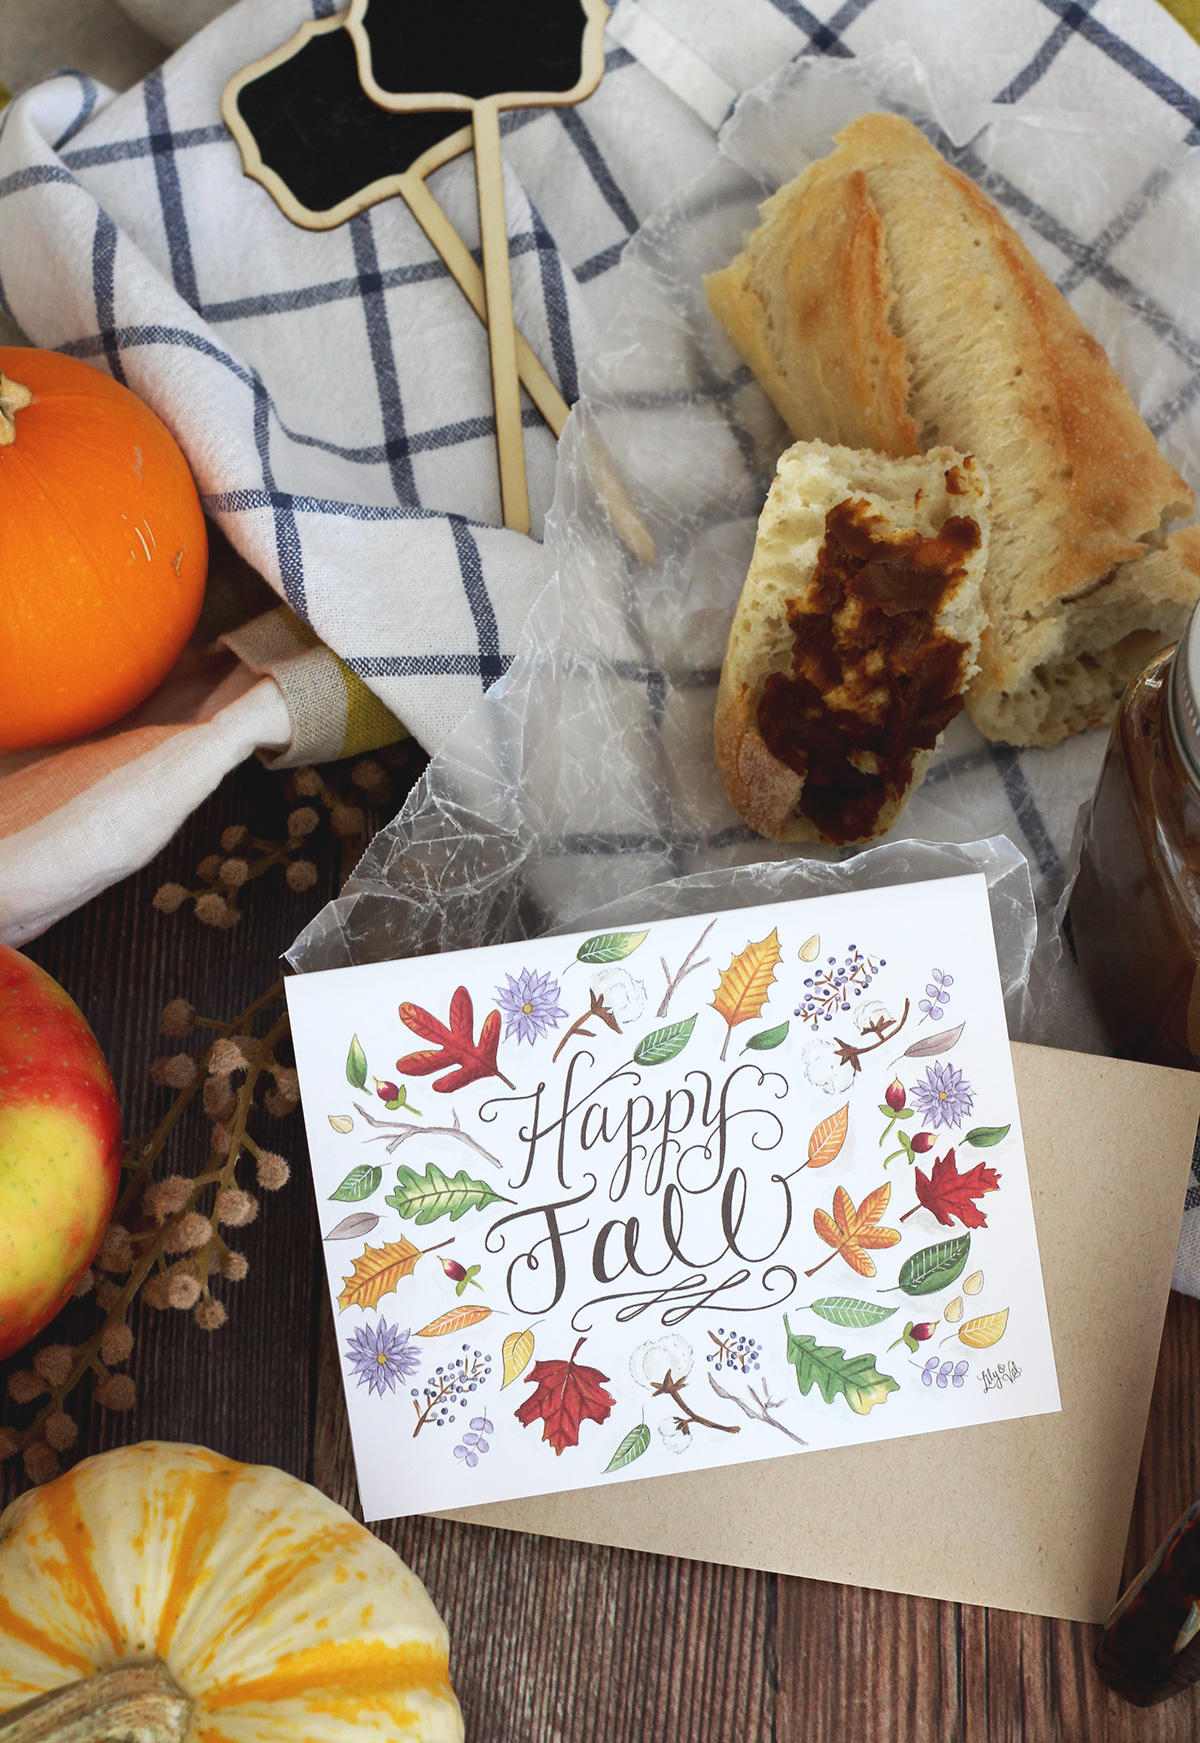 Food Gift Idea: Send a Lily & Val Happy Fall Card + Pumpkin butter packaged in jars topped with our FREE hand-drawn pumpkin butter labels! Simple & sweet